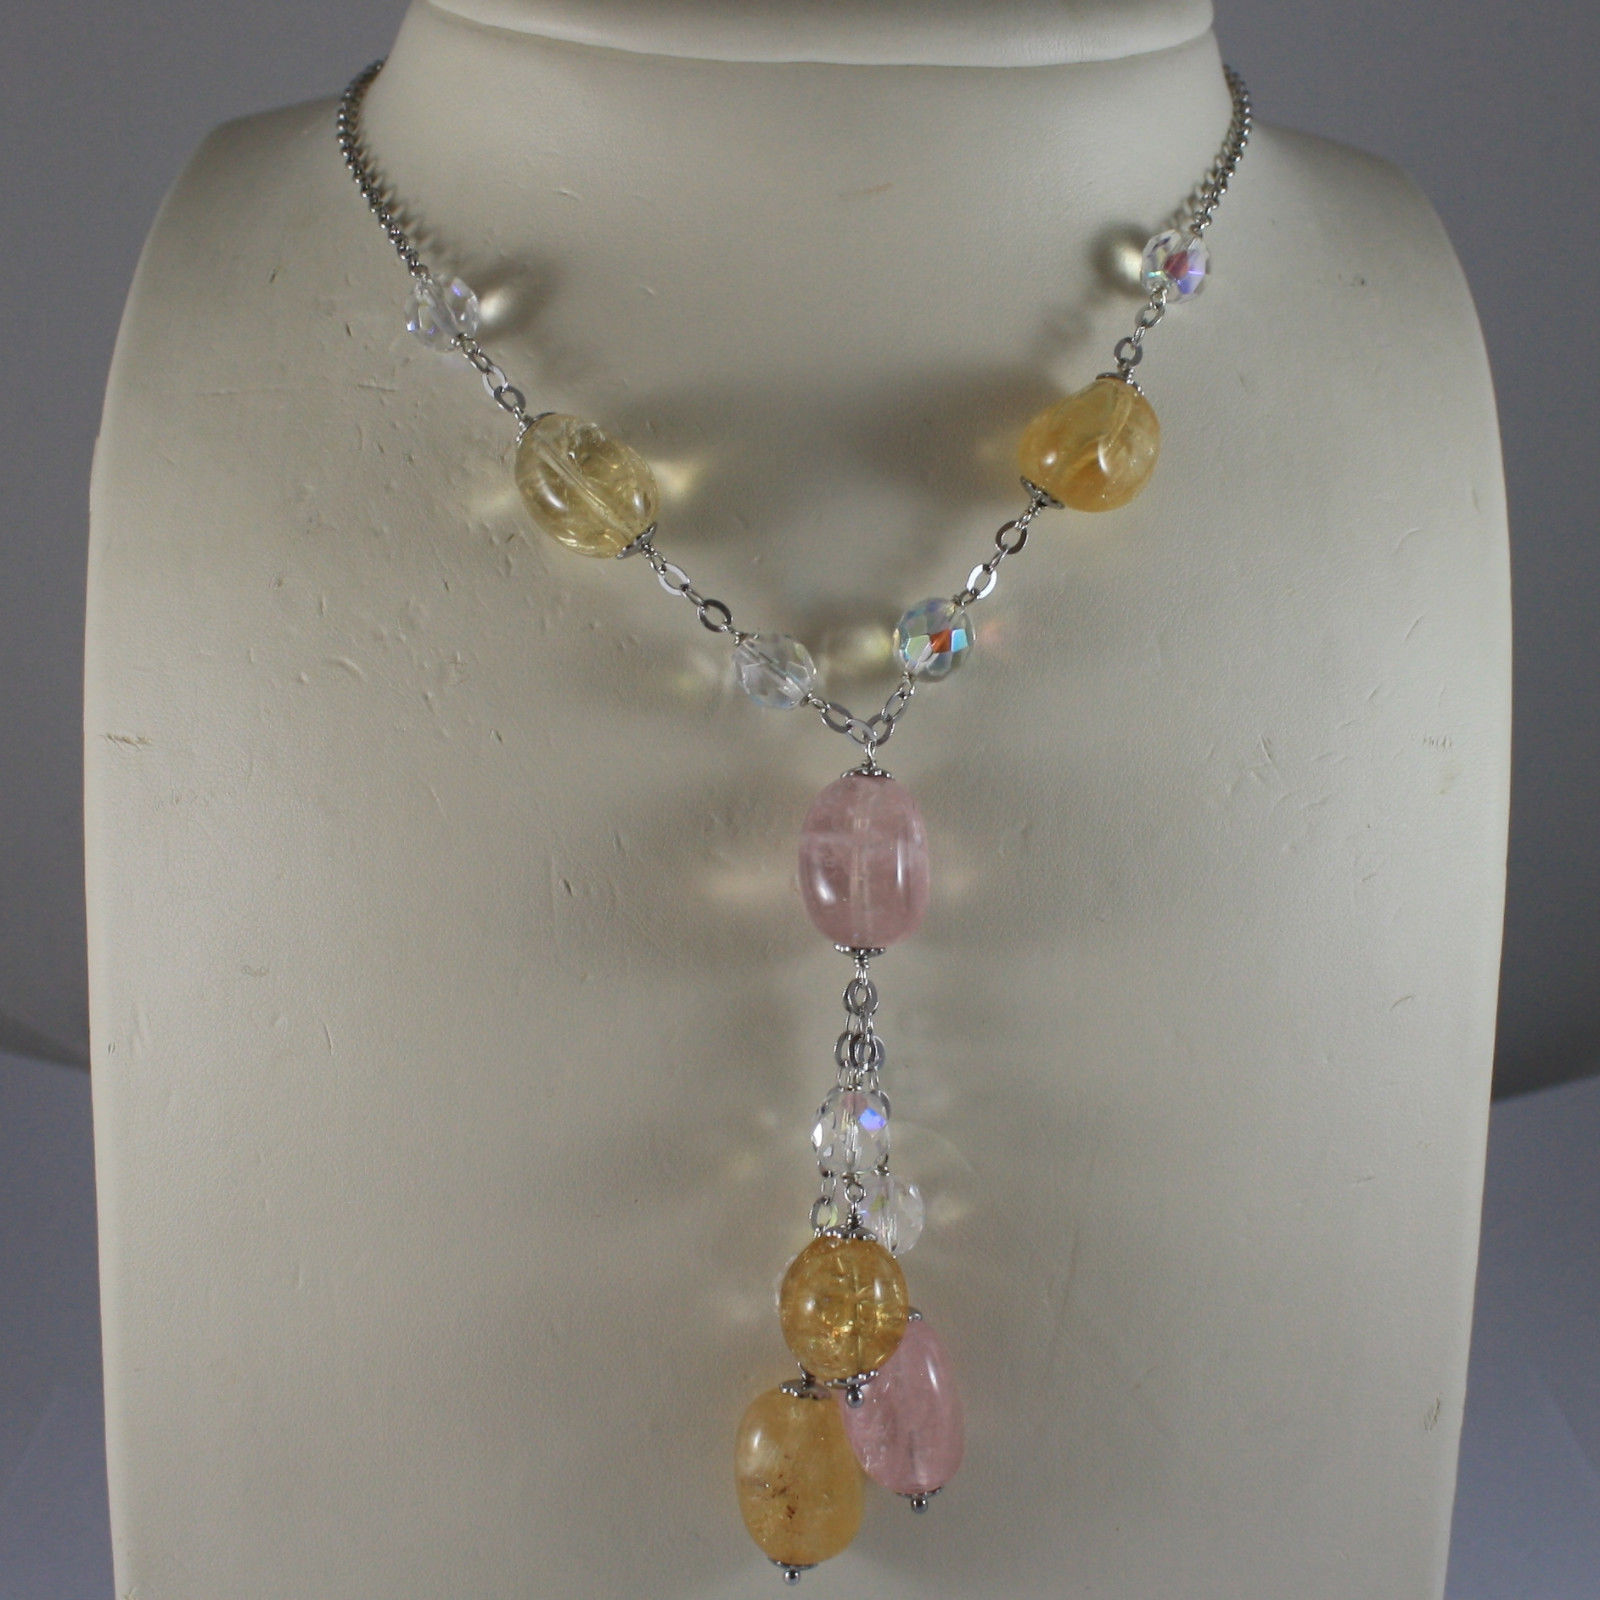 .925 STERLING SILVER NECKLACE WITH PINK QUARTZ, YELLOW QUARTZ AND CRYSTALS